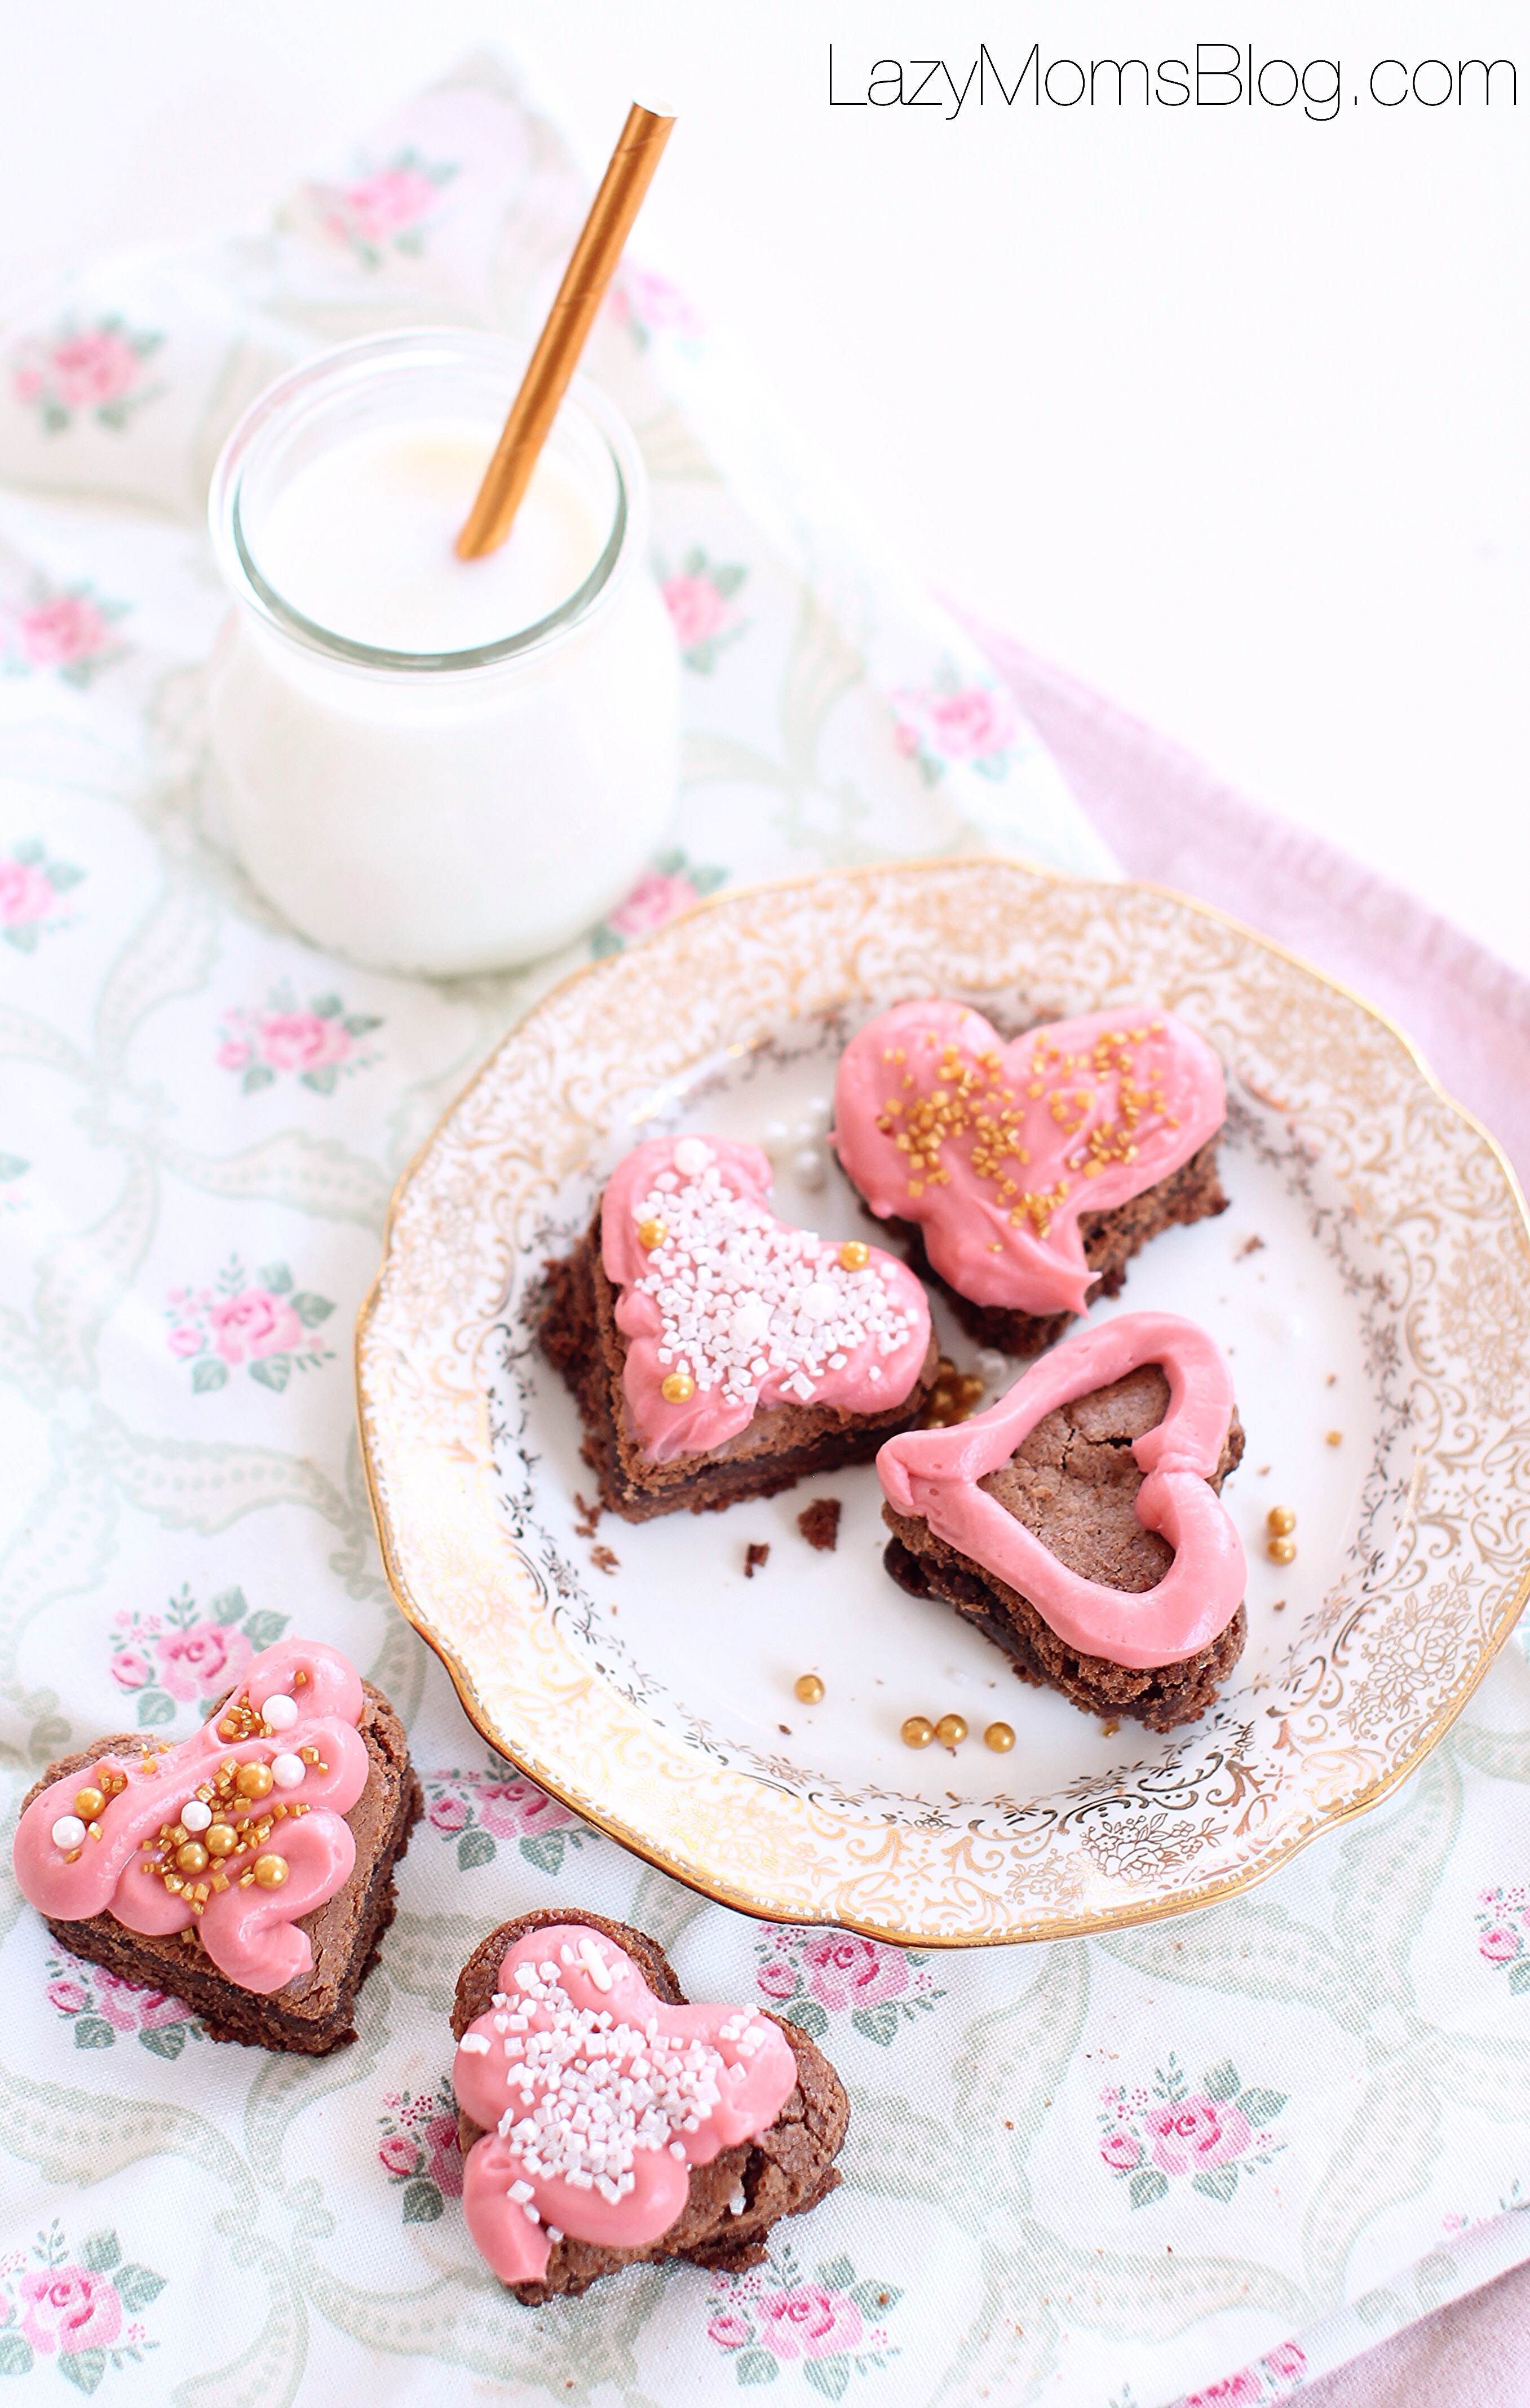 simple valentine's day dessert: brownie bites with cream cheese frosting!